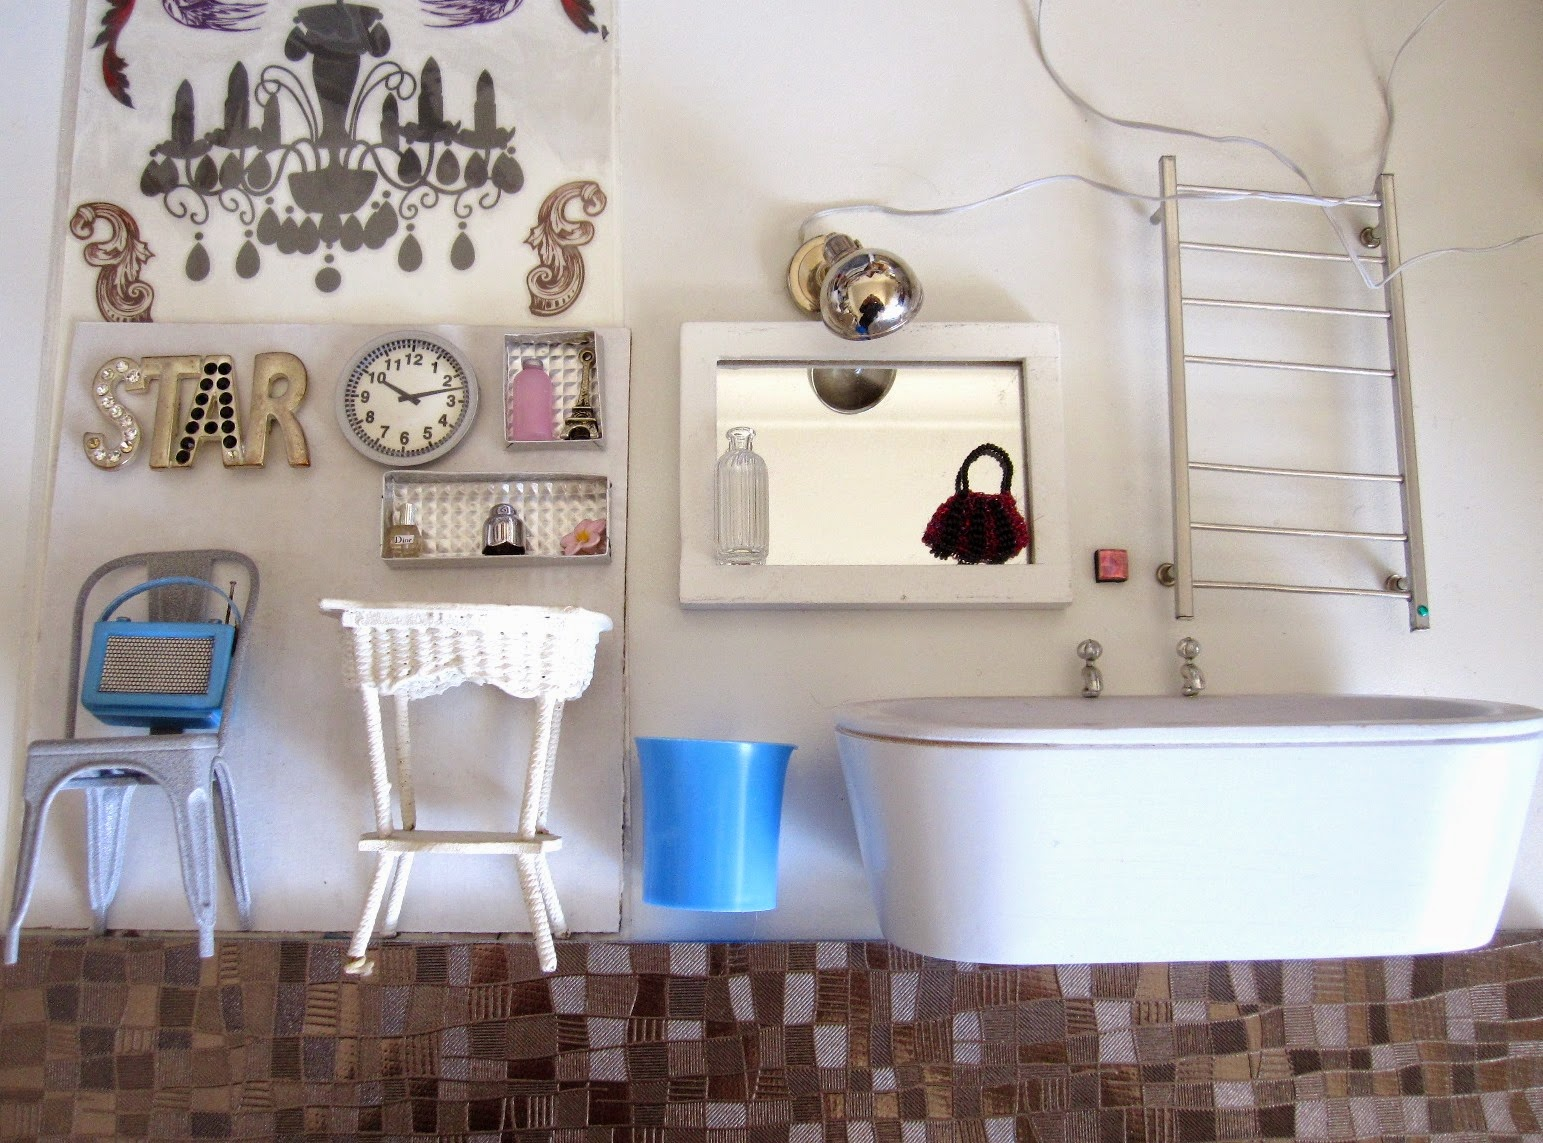 Selection of silver and white dolls house bathroom miniature furniture and accessories, with a full-sized silver-coloured placemat used as flooring and a range of silver, pink, white and blue miniature accessories.